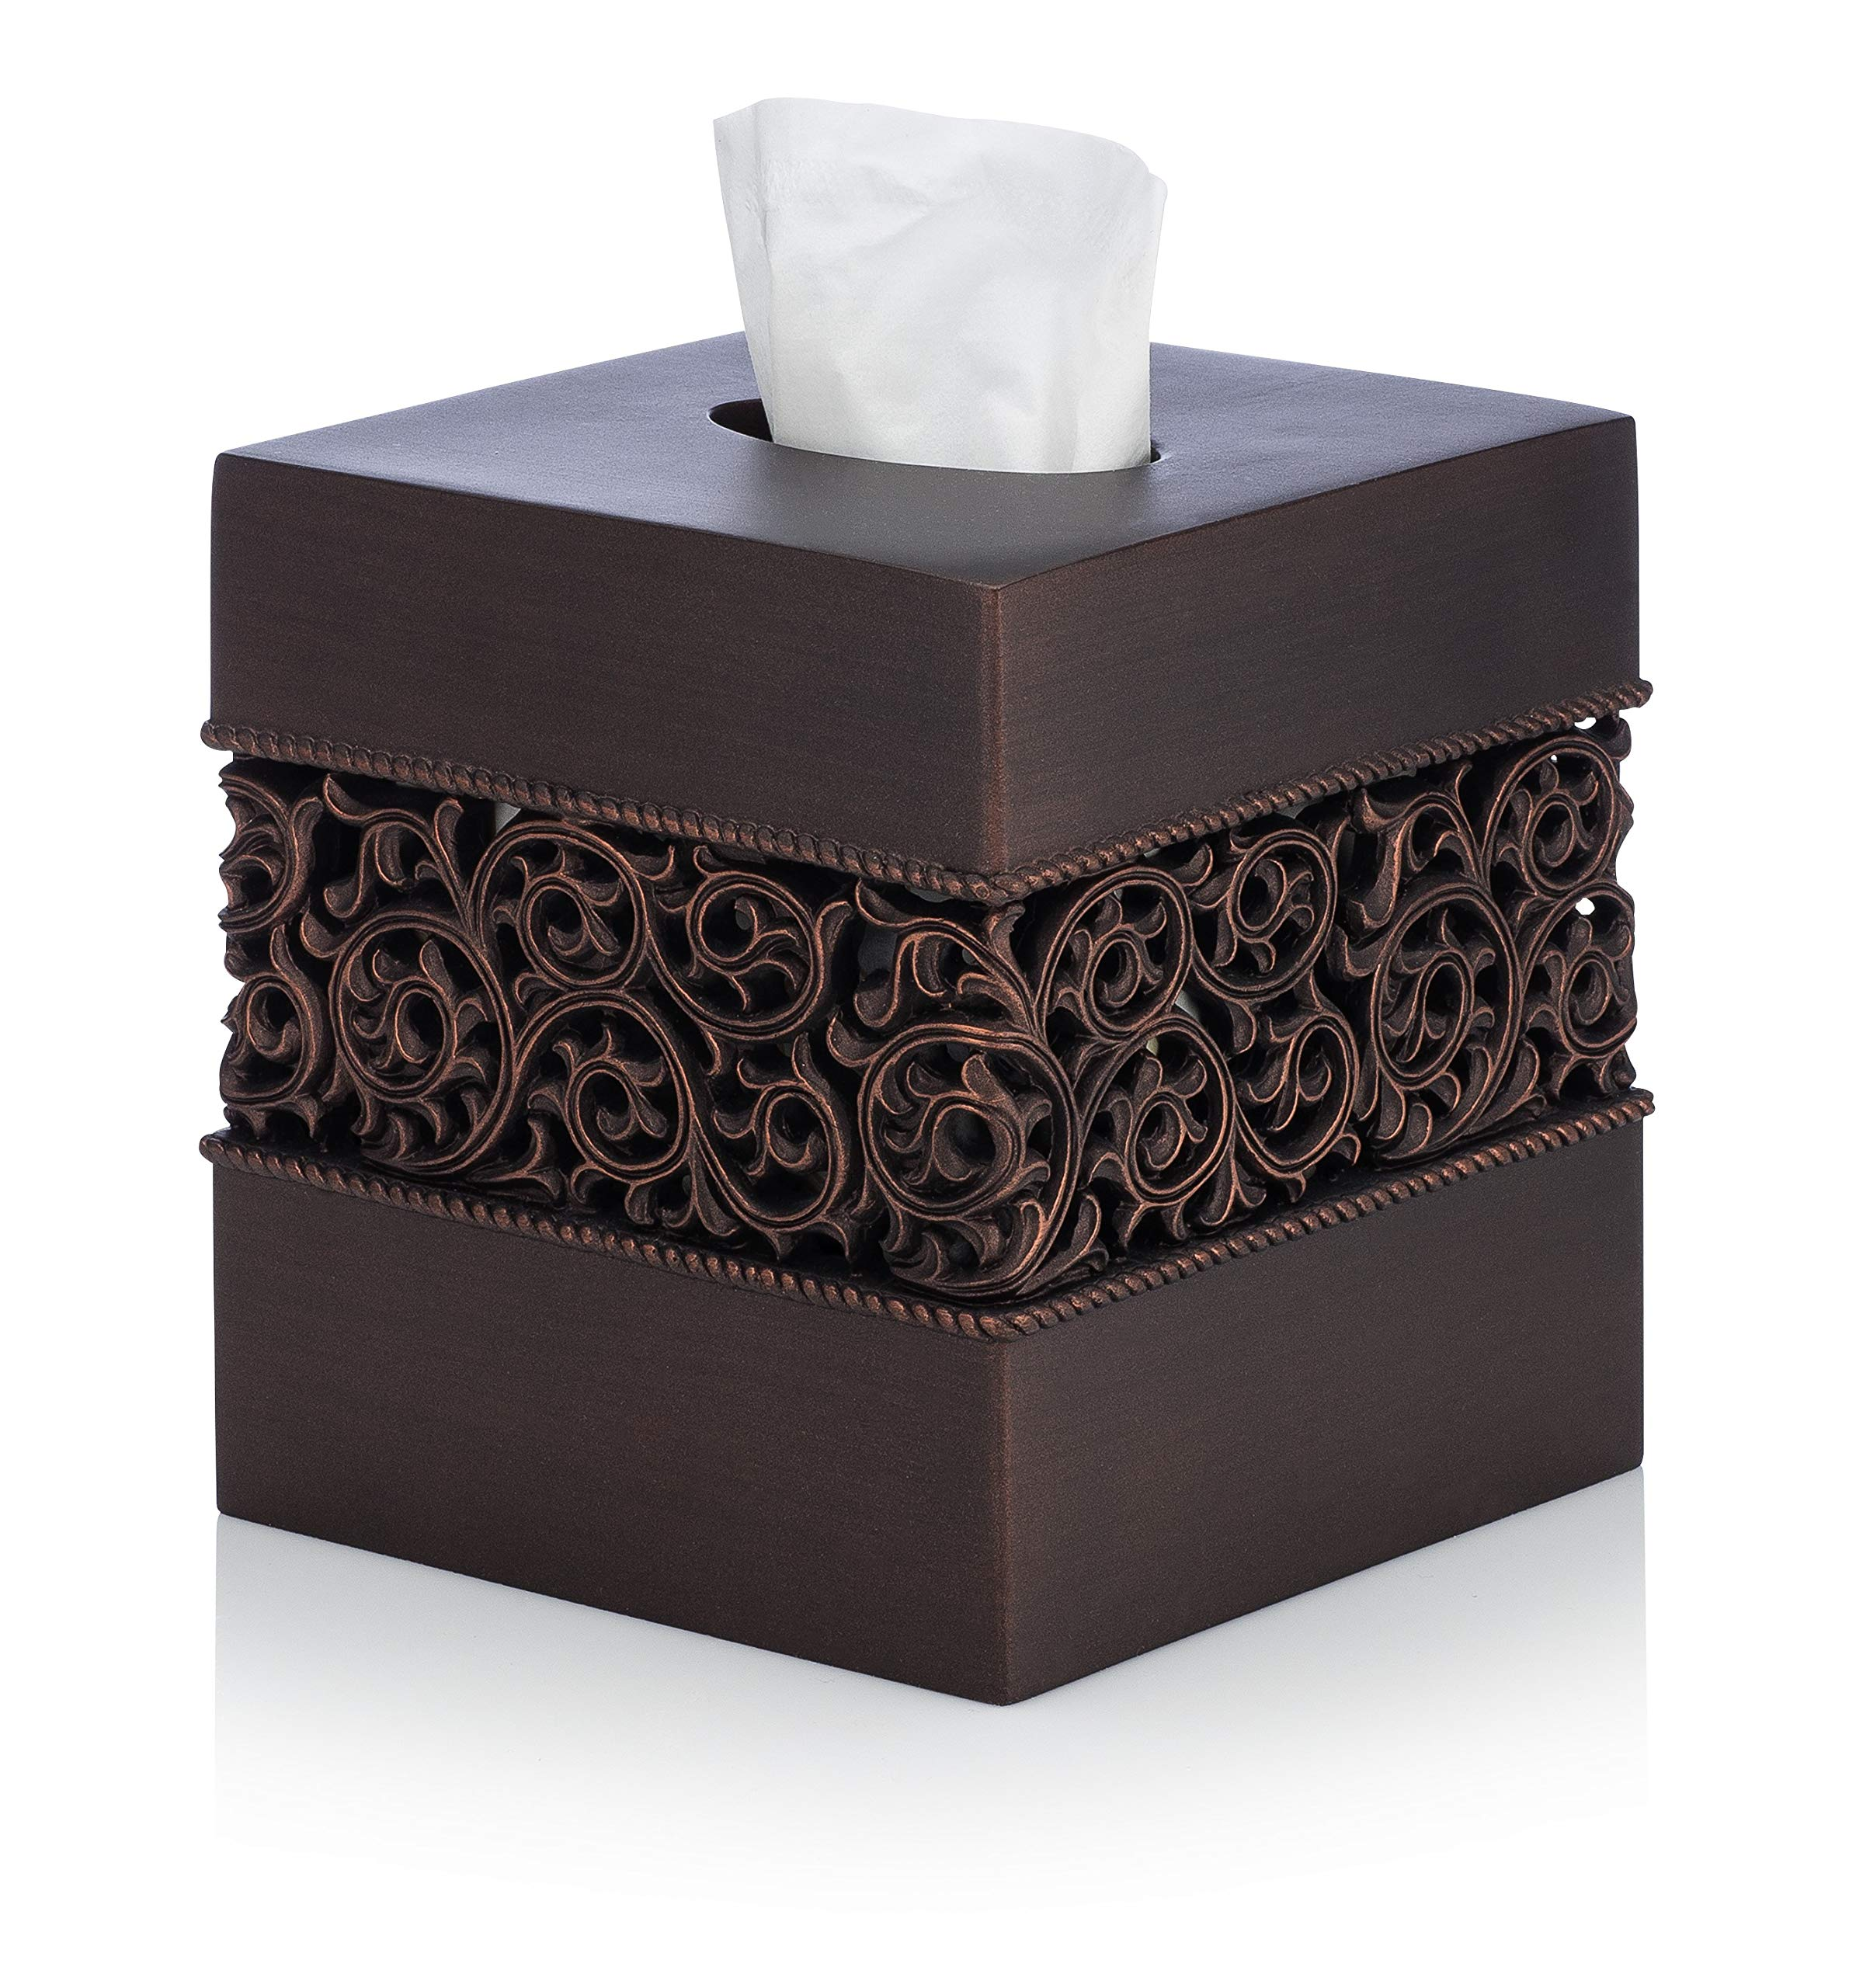 EssentraHome Bronze Finish Squared Tissue Box Cover for Bathroom Vanity Counter Tops Also Great for Bedrooms and Living Rooms